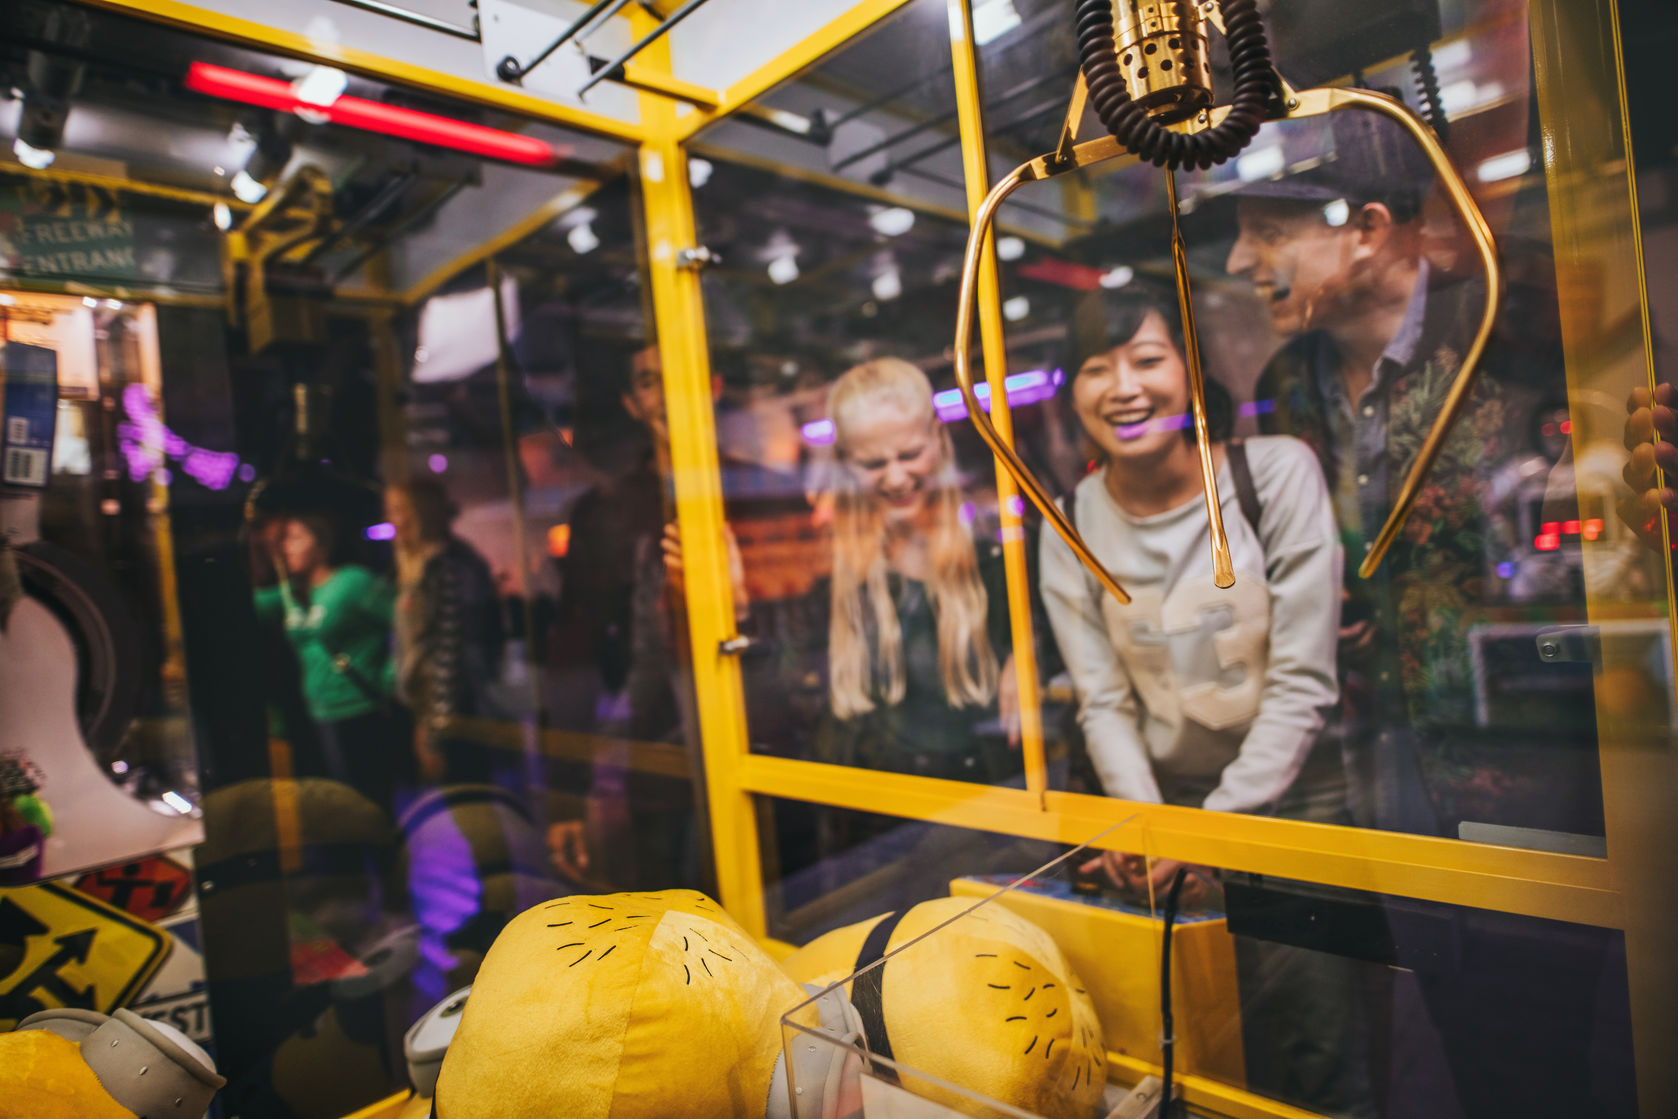 Experience a variety of arcade games